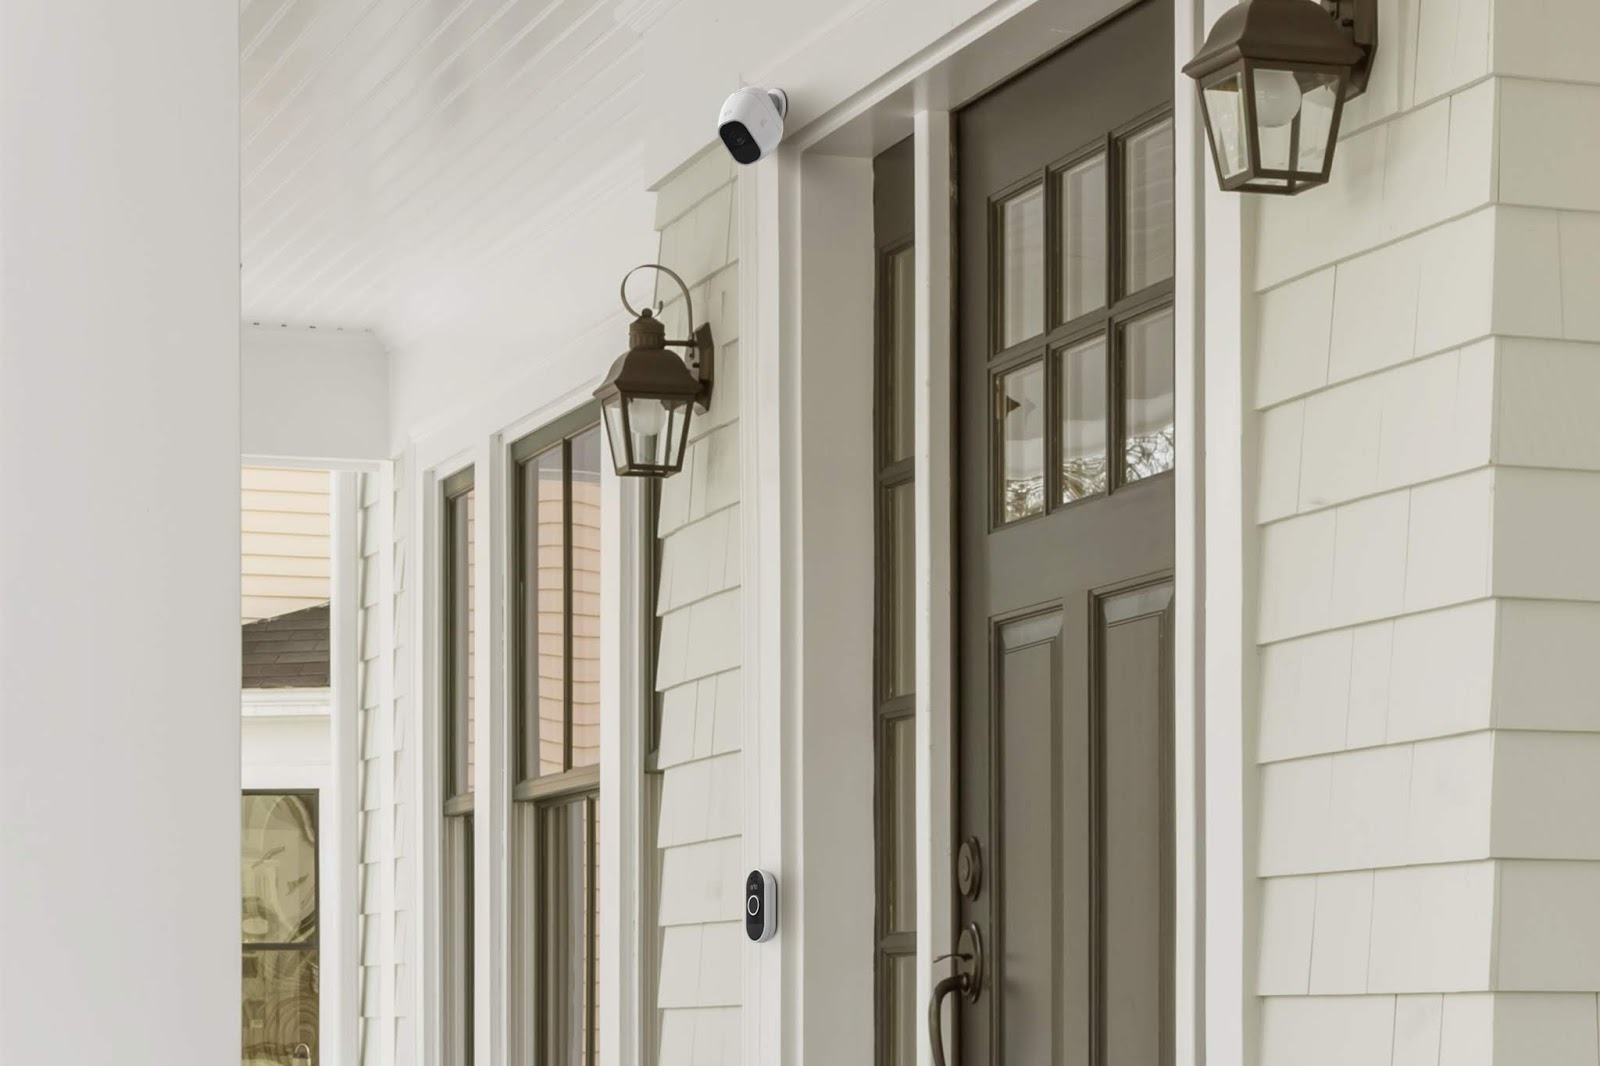 Arlo Unveils Pricing And Availability Of All New Wire Free Smart Wiring Door Chimes In Parallel The Audio Doorbell Chime Build On Success Our Camera Systems By Allowing Users To Easily Engage With Entryway Visitors From